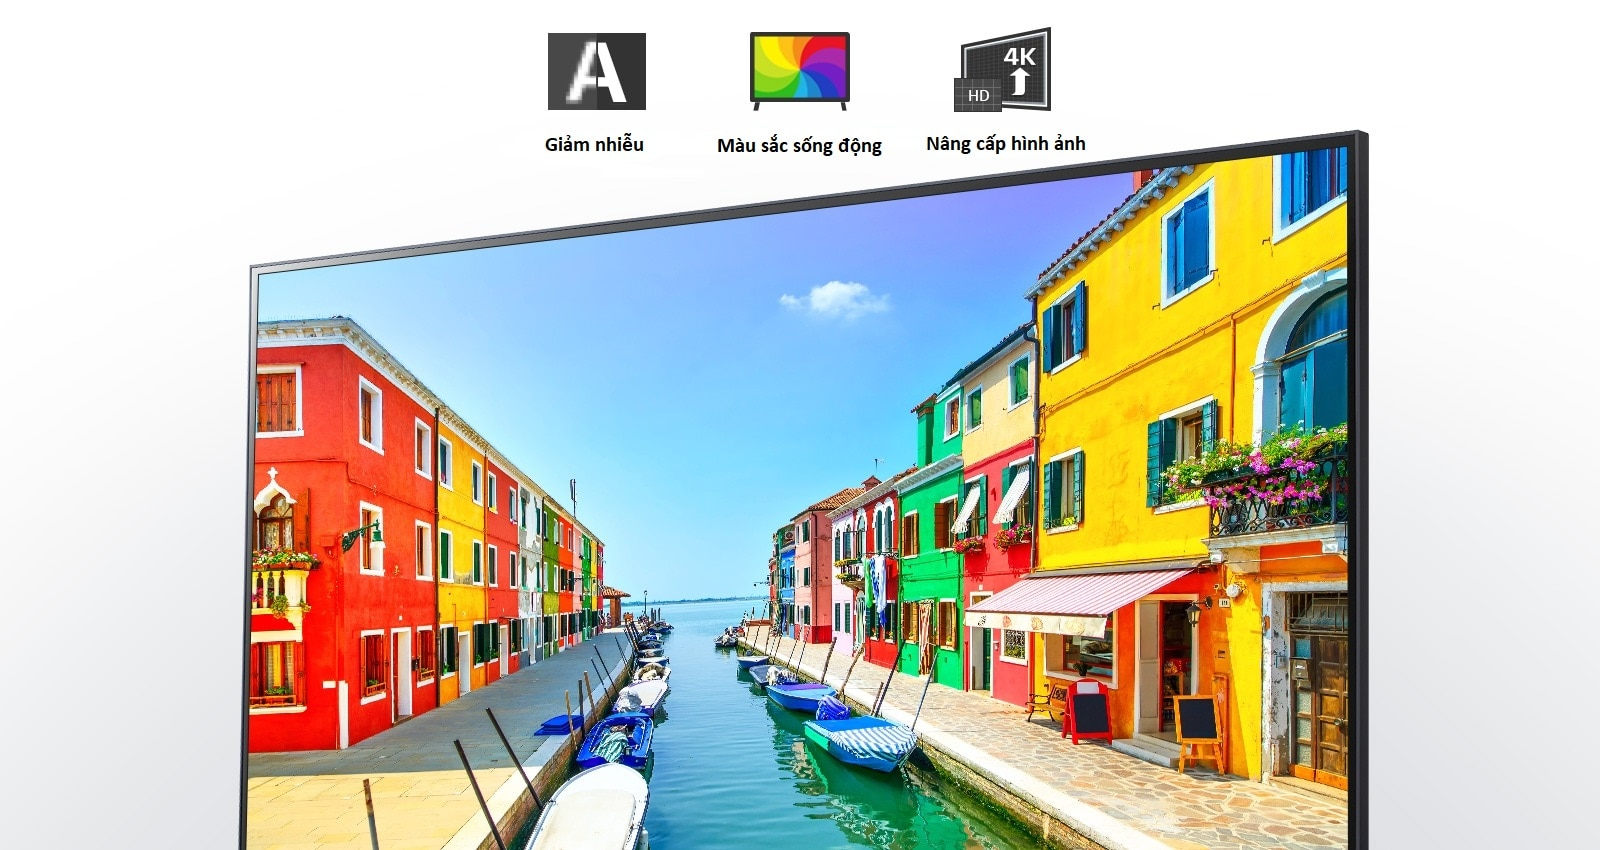 A TV screen displaying a port city where buildings are painted in multiple colors and little boats are anchored in long and narrow harbor.